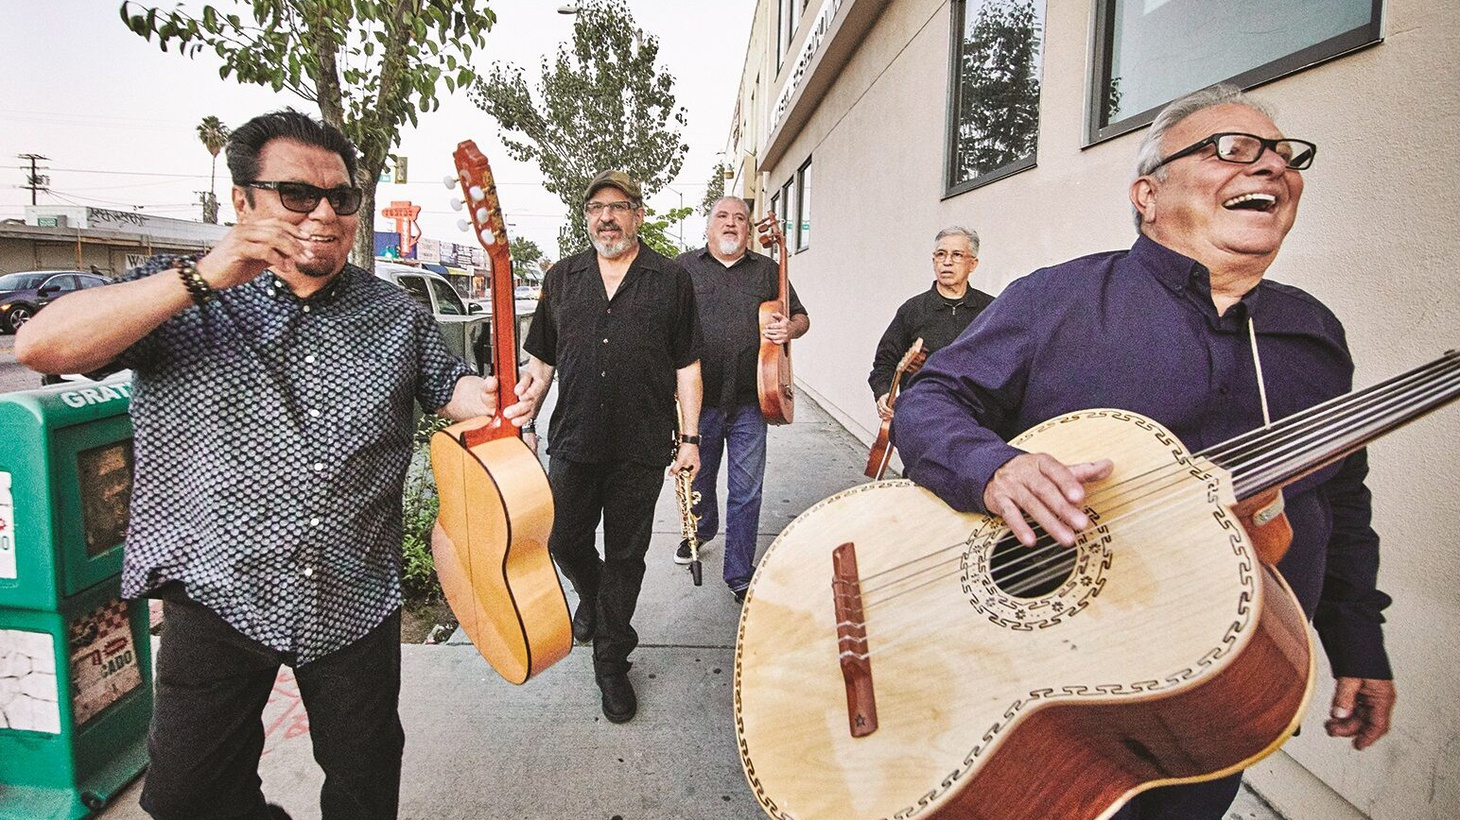 East LA icons Los Lobos released their first ever Christmas album Llego Navidad earlier this fall. The album features reimagined versions of traditional holiday songs from across North, Central and South America.